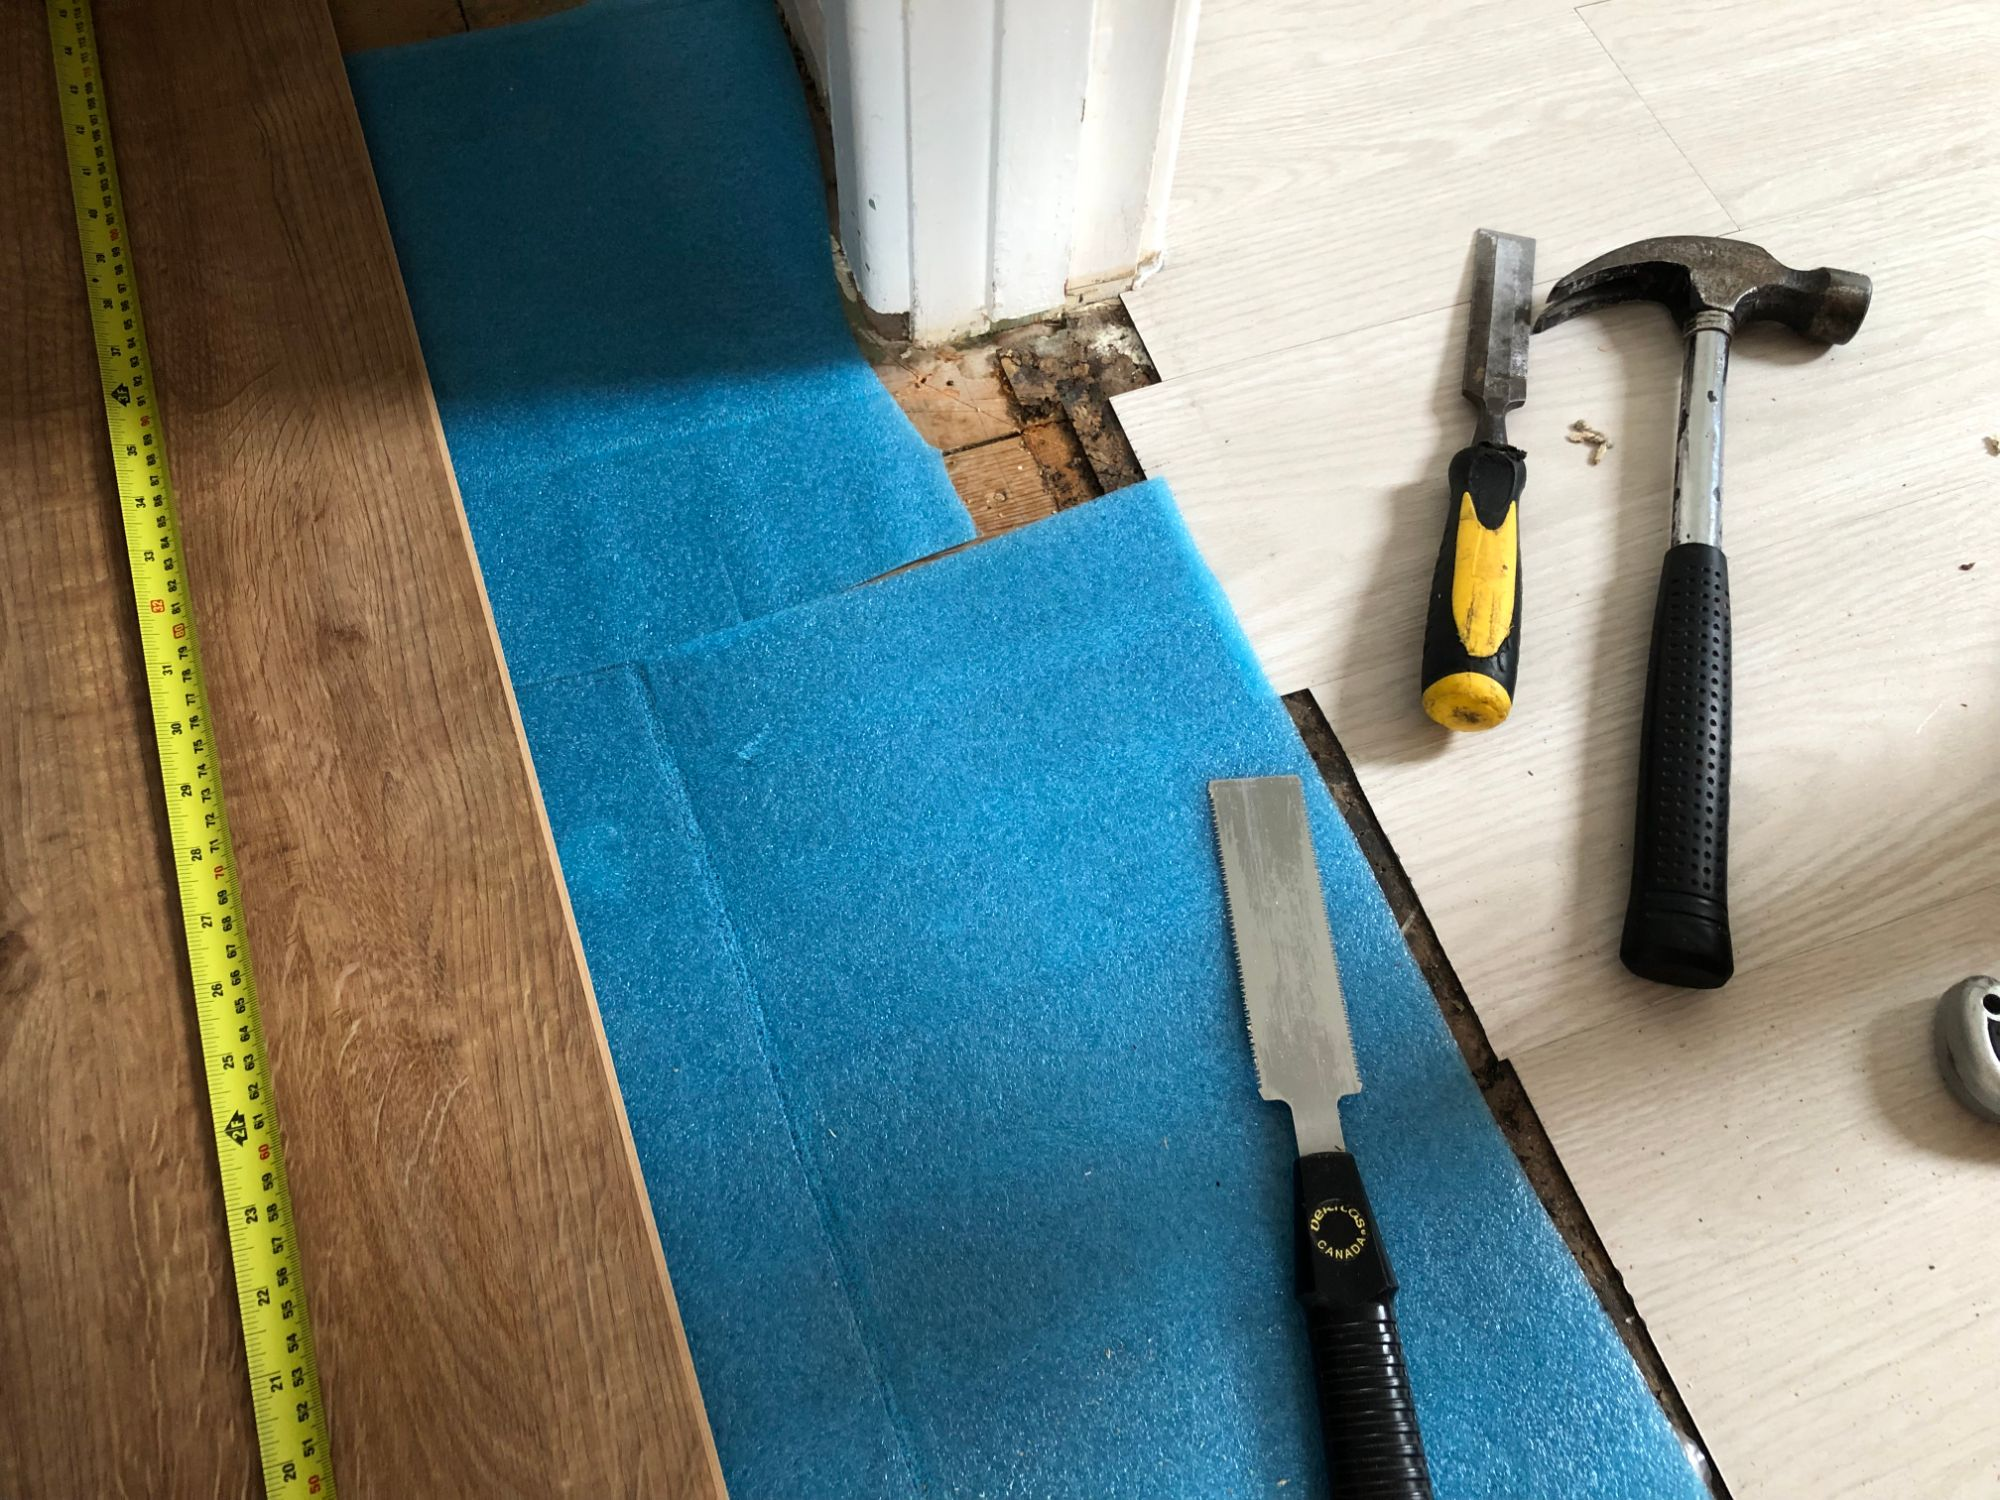 Free stock photo lay laminate floor DIY tools underlay